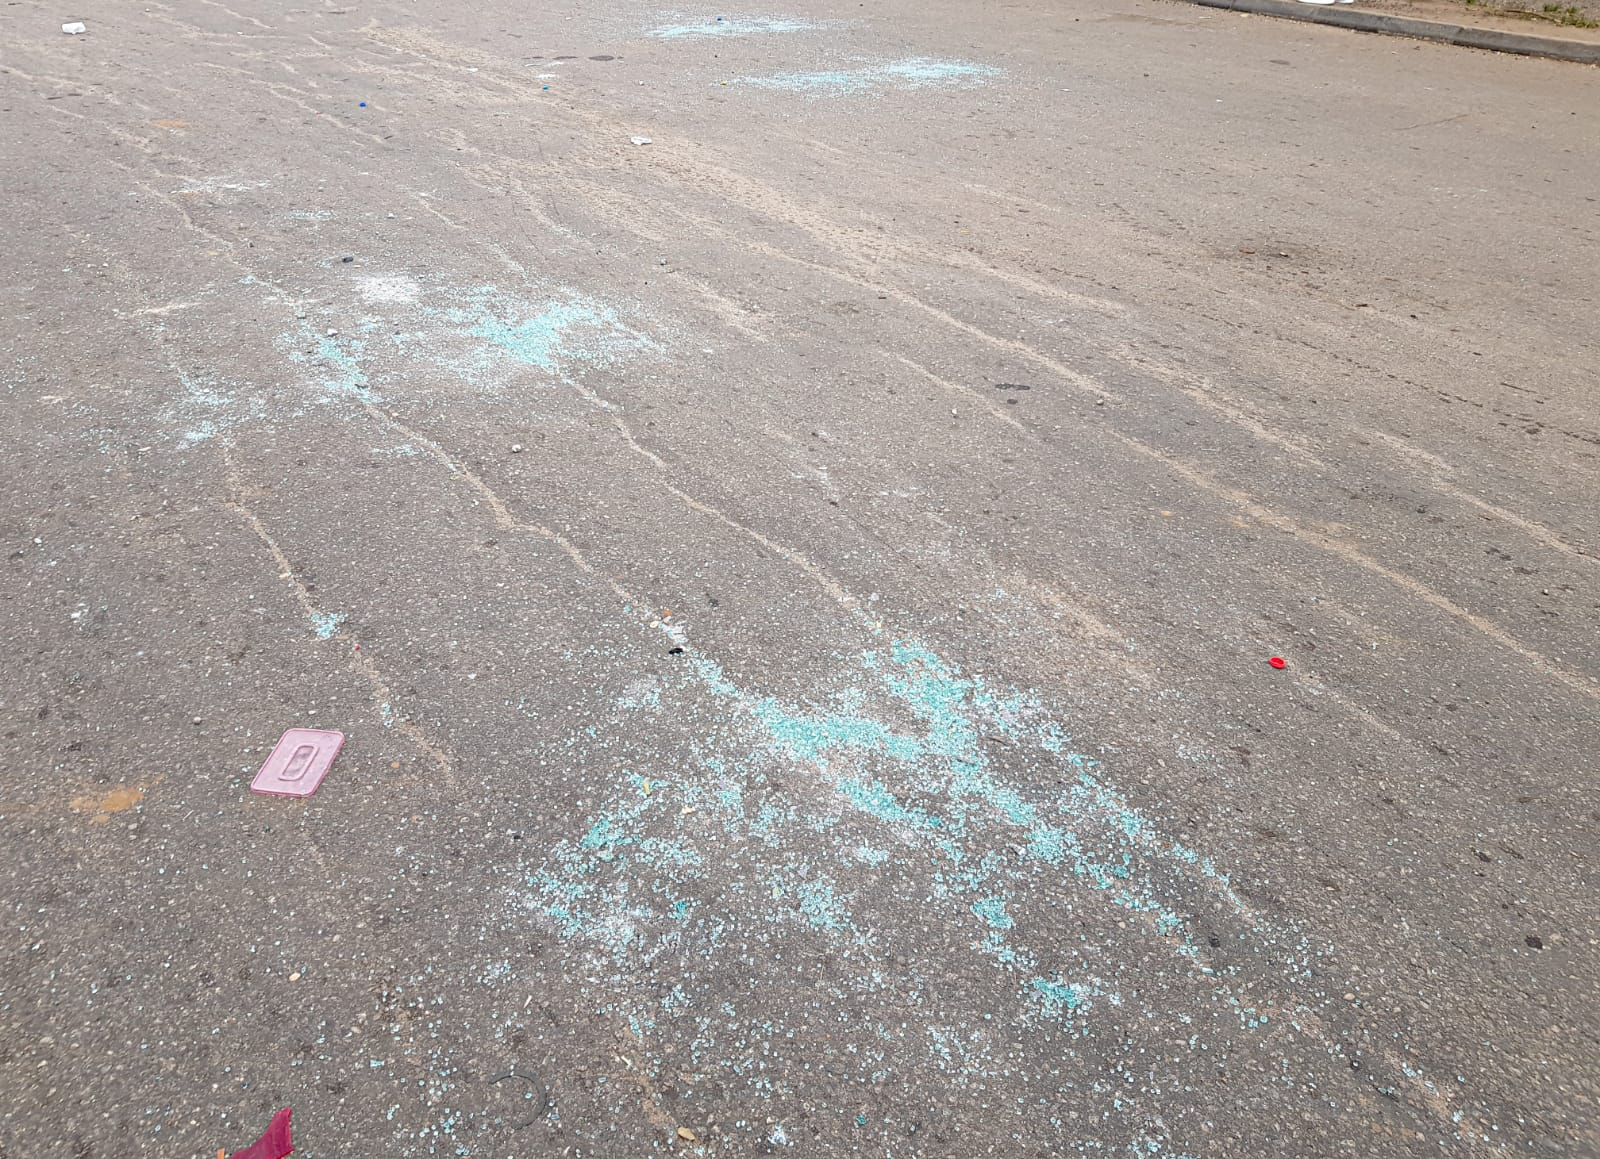 Shattered glass from the windscreens of cars that were smashed by unknown assailants at Berger Junction, Abuja (14.10.2020) [Photo: Amaury Falt-Brown]